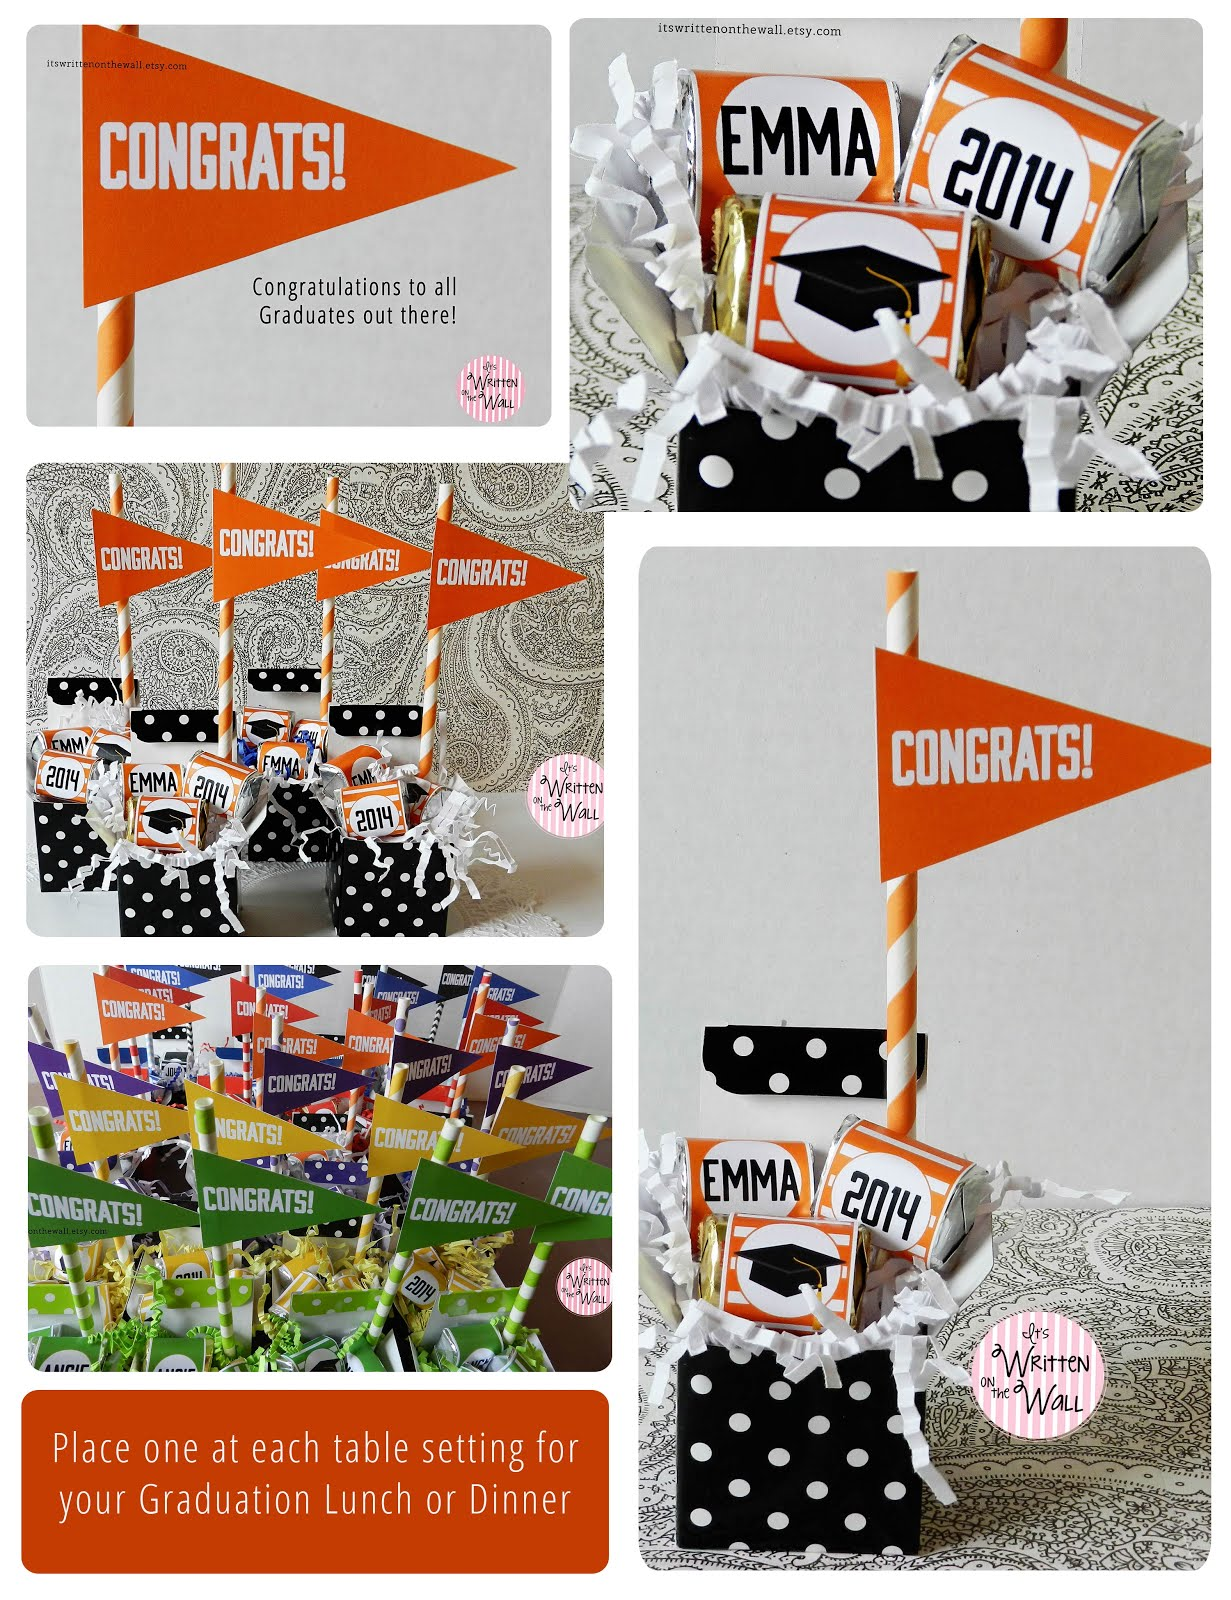 Fabulous Idea for Graduation Gift/Party Favors. Centerpiece